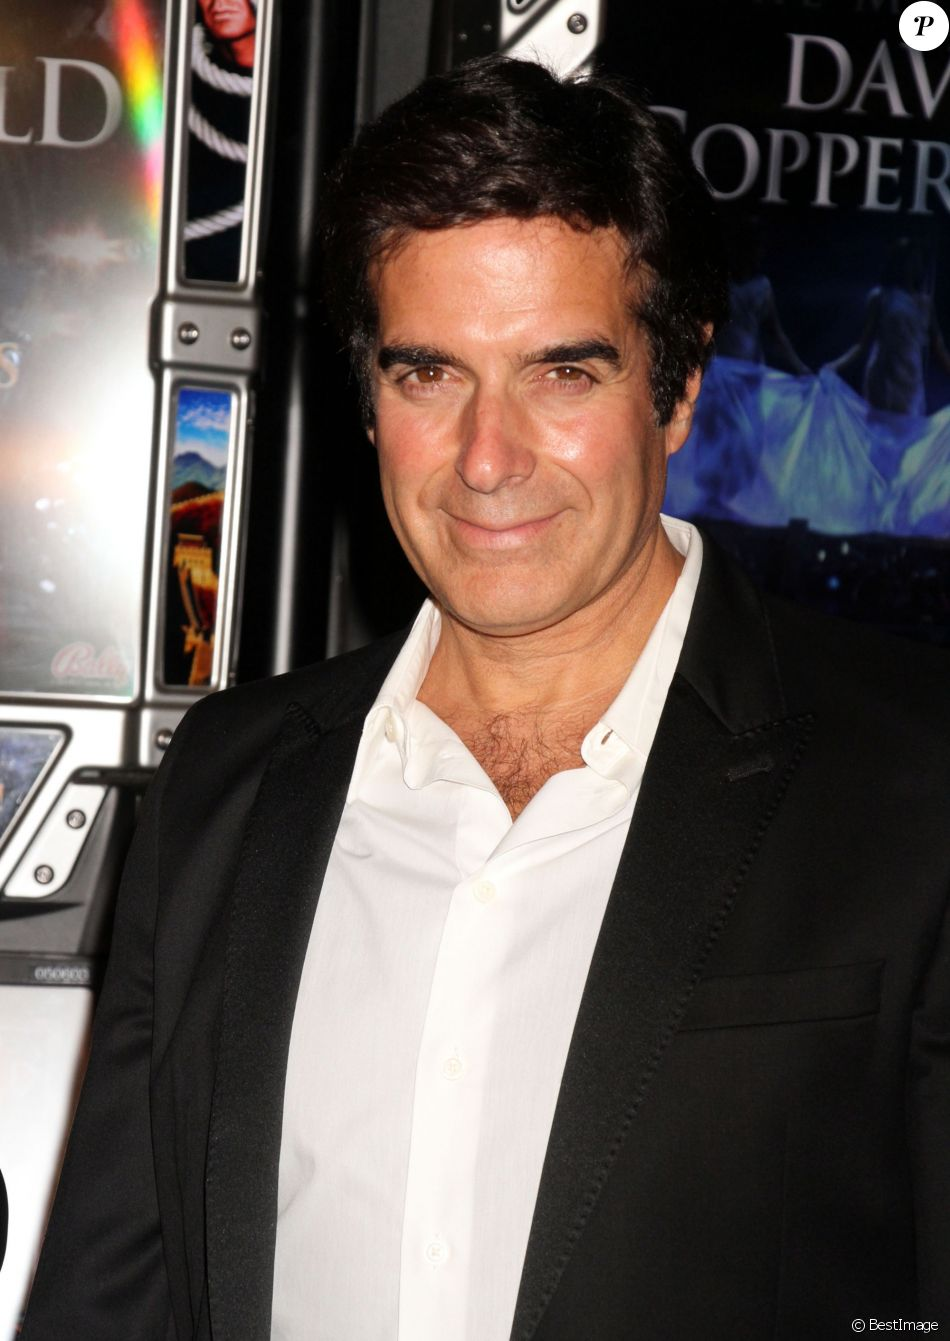 le magicien david copperfield devoile sa nouvelle machine a sous  le magicien david copperfield devoile sa nouvelle machine a sous the magic of david copperfield a las vegas le 26 juin 2014